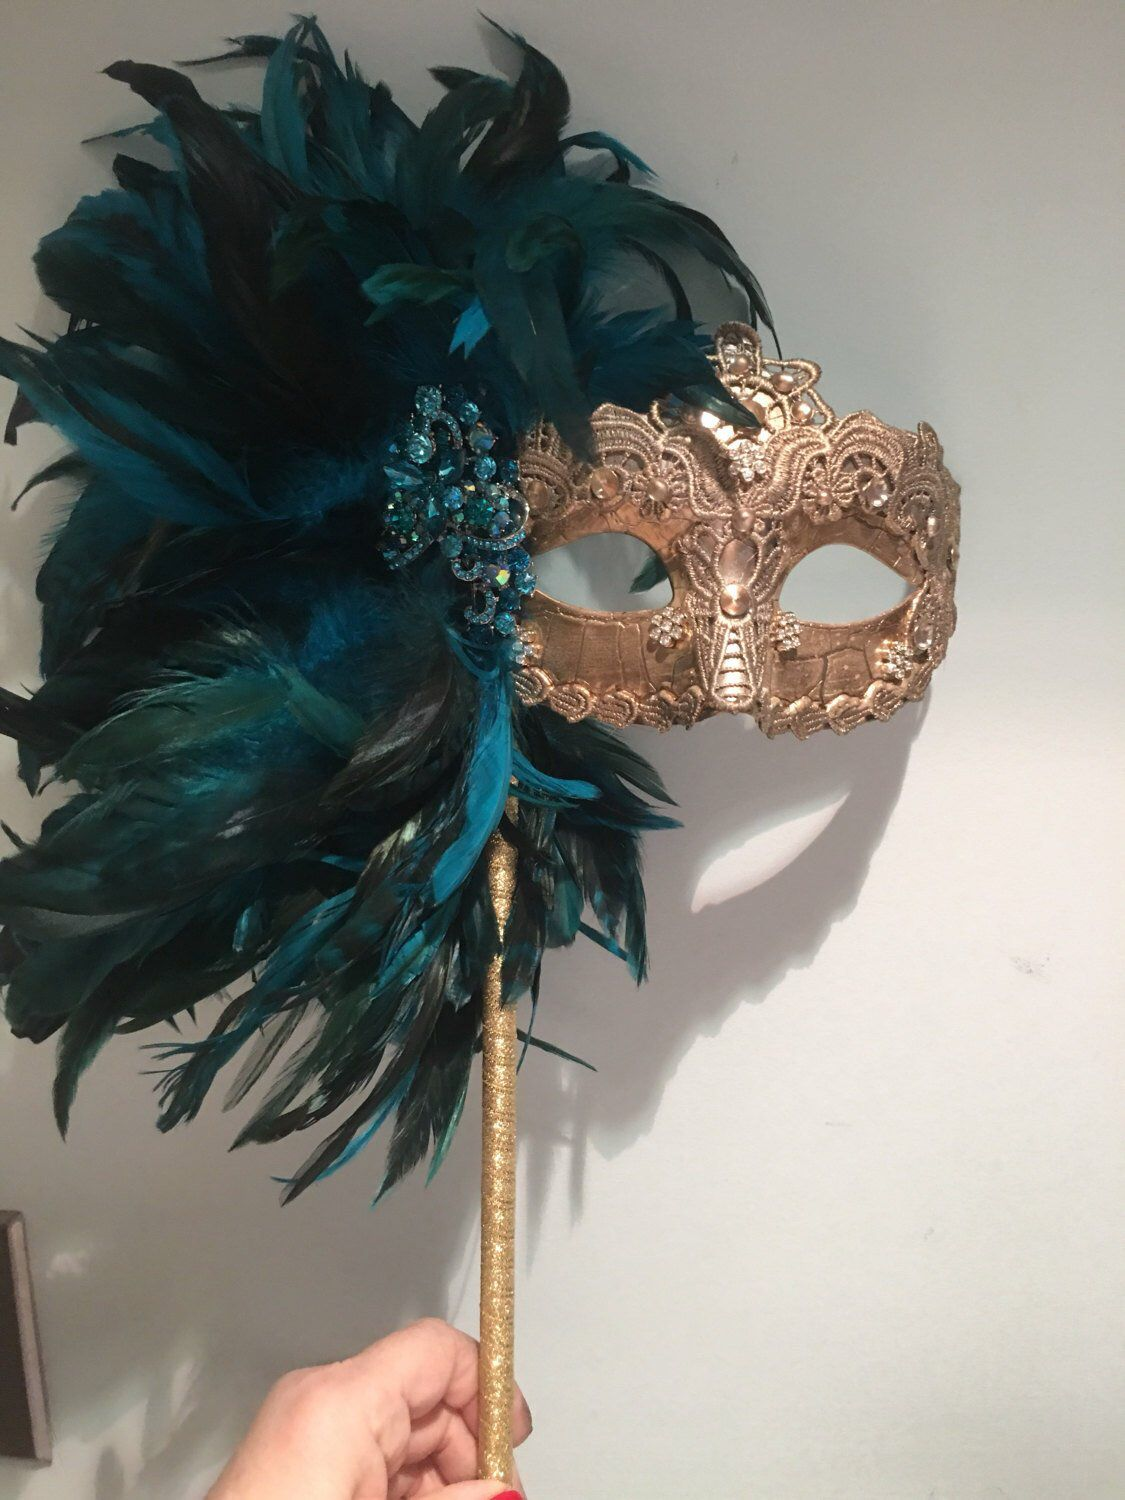 Mardi Gras Mask with Feathers on Stick Masquerade Party